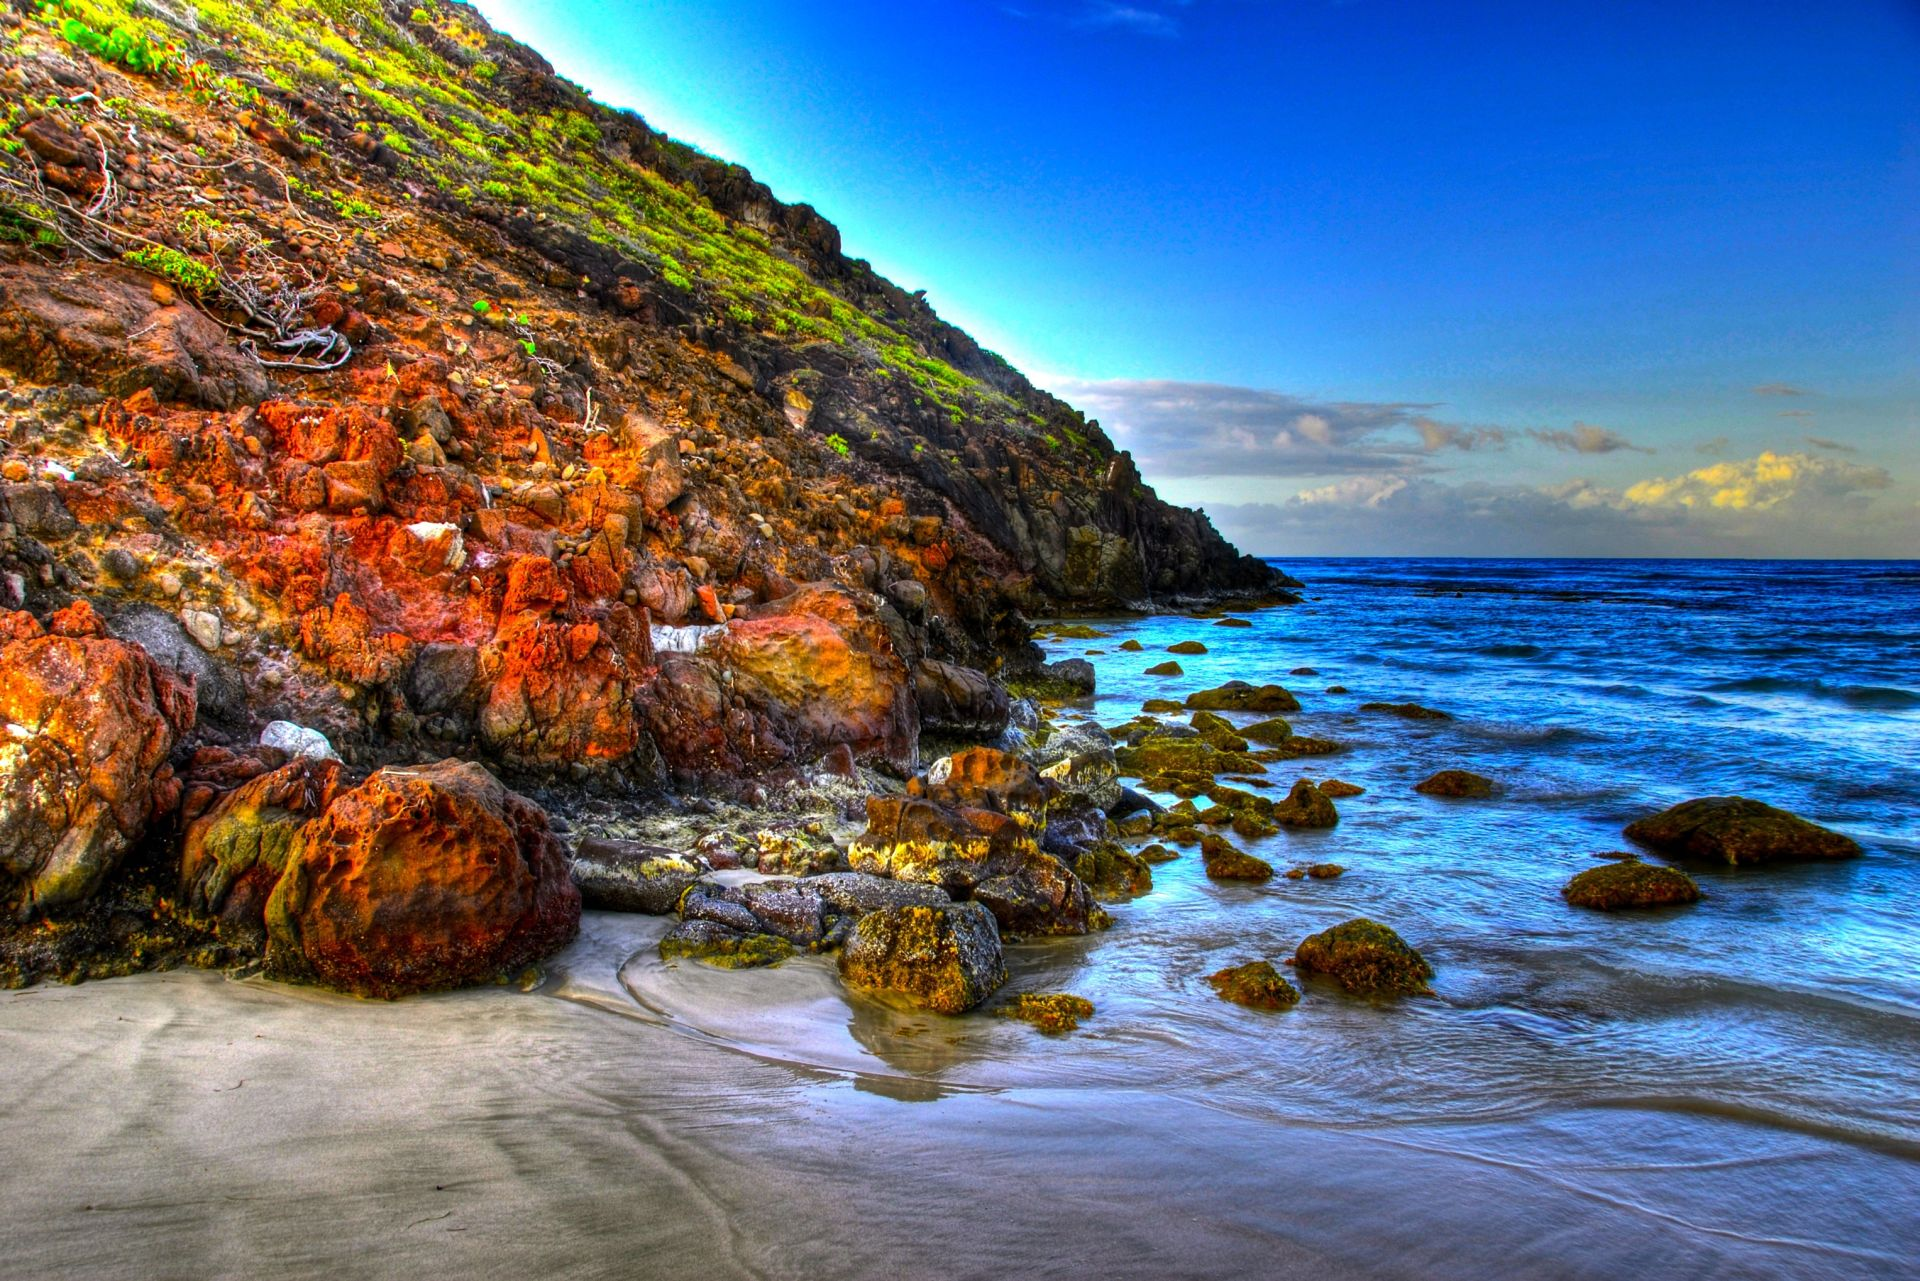 hdr beach wallpaper 38279